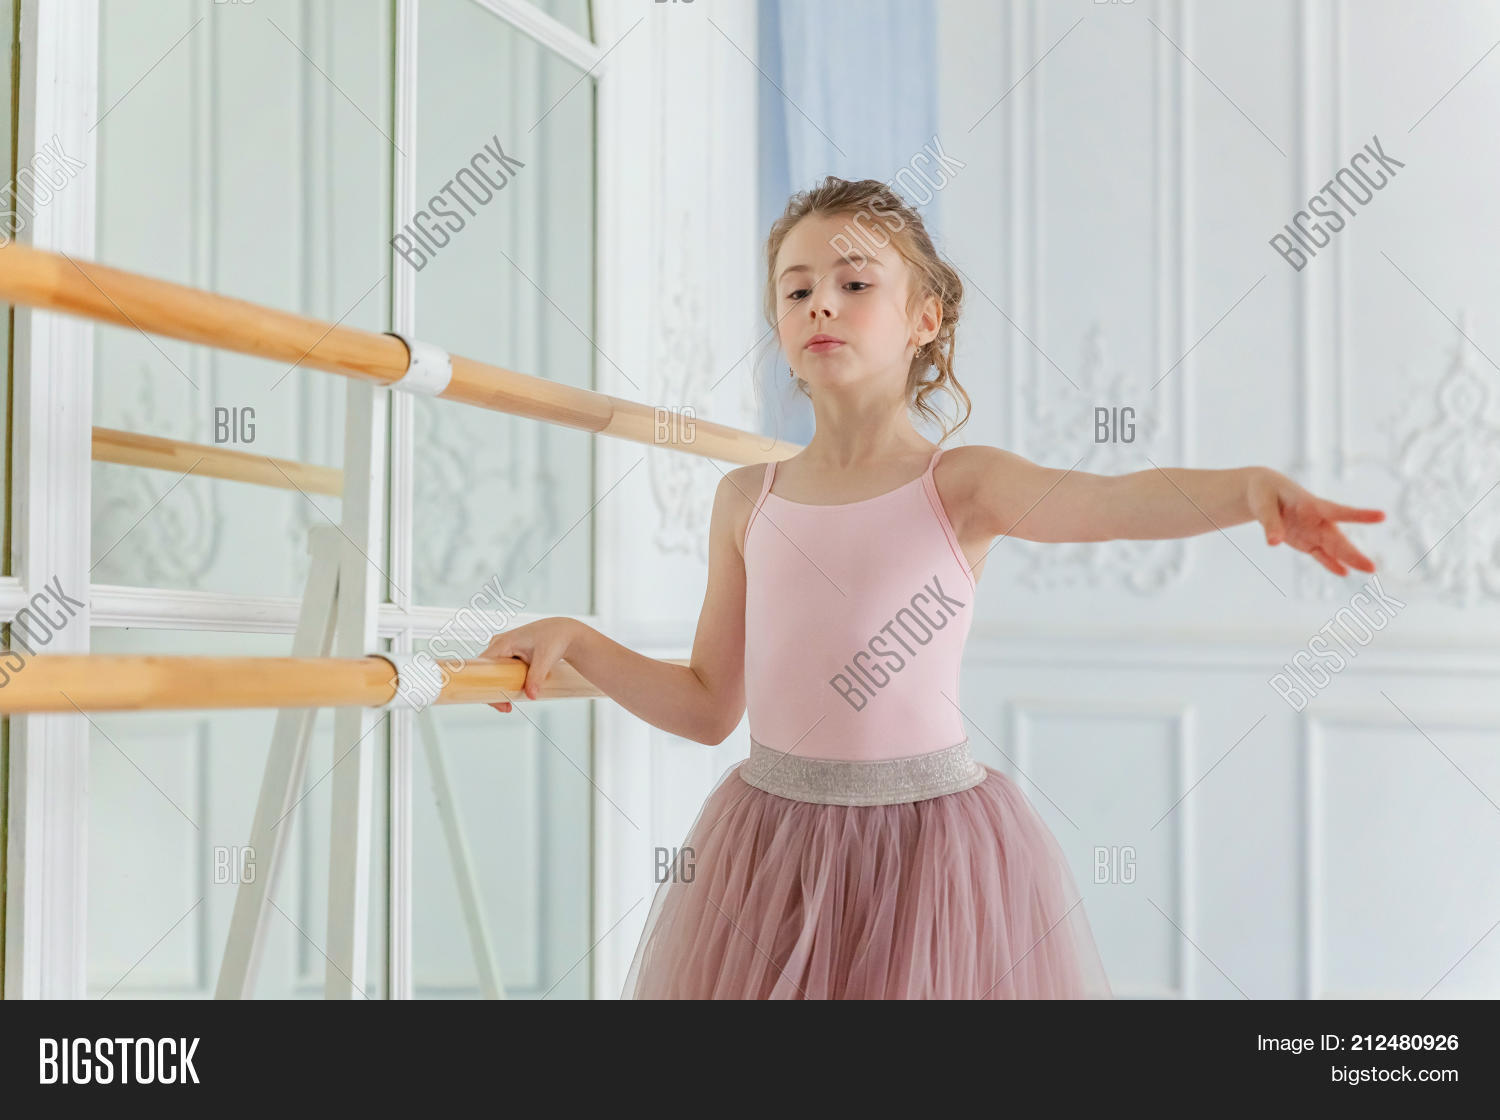 Young Classical Ballet Image & Photo (Free Trial) | Bigstock